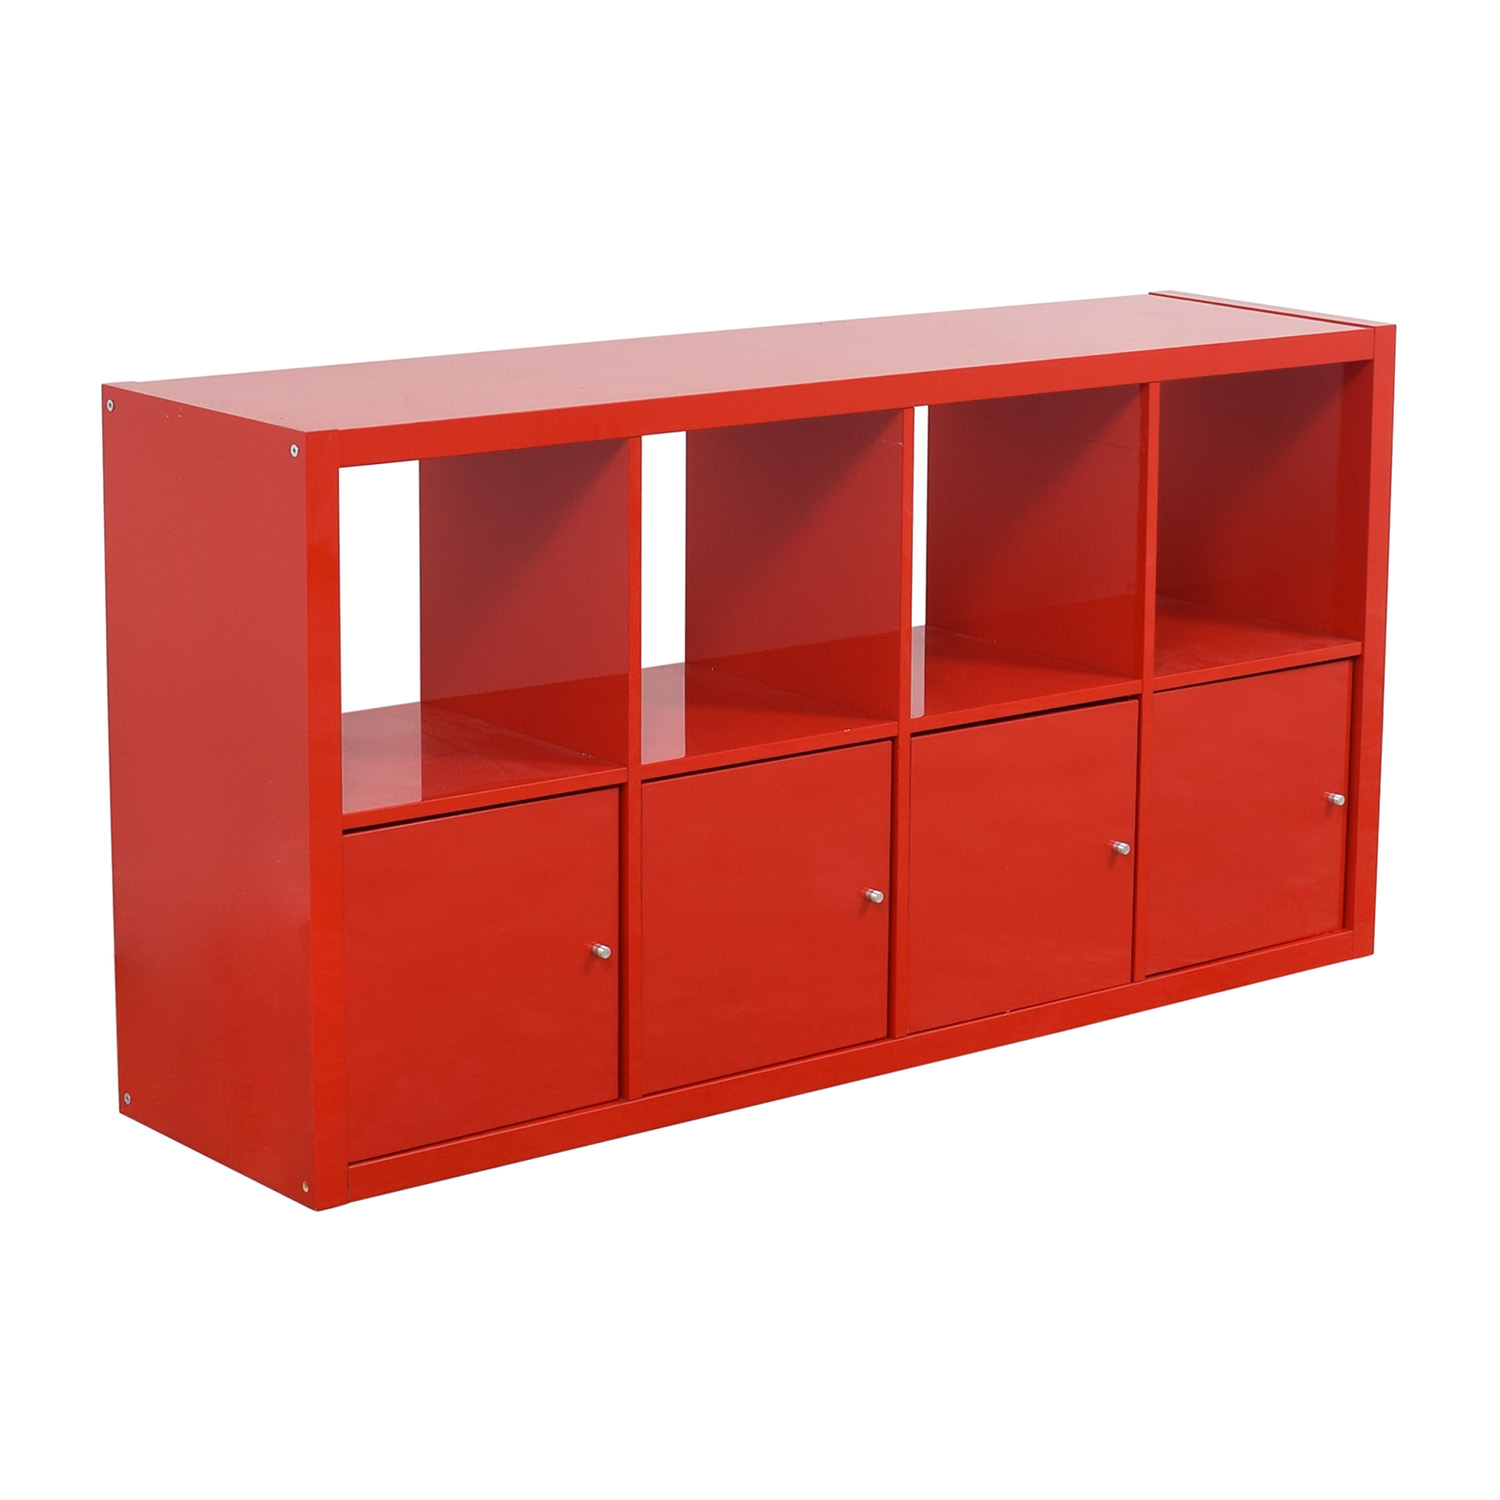 Ikea Red Shelving With Storage Cabinets Price